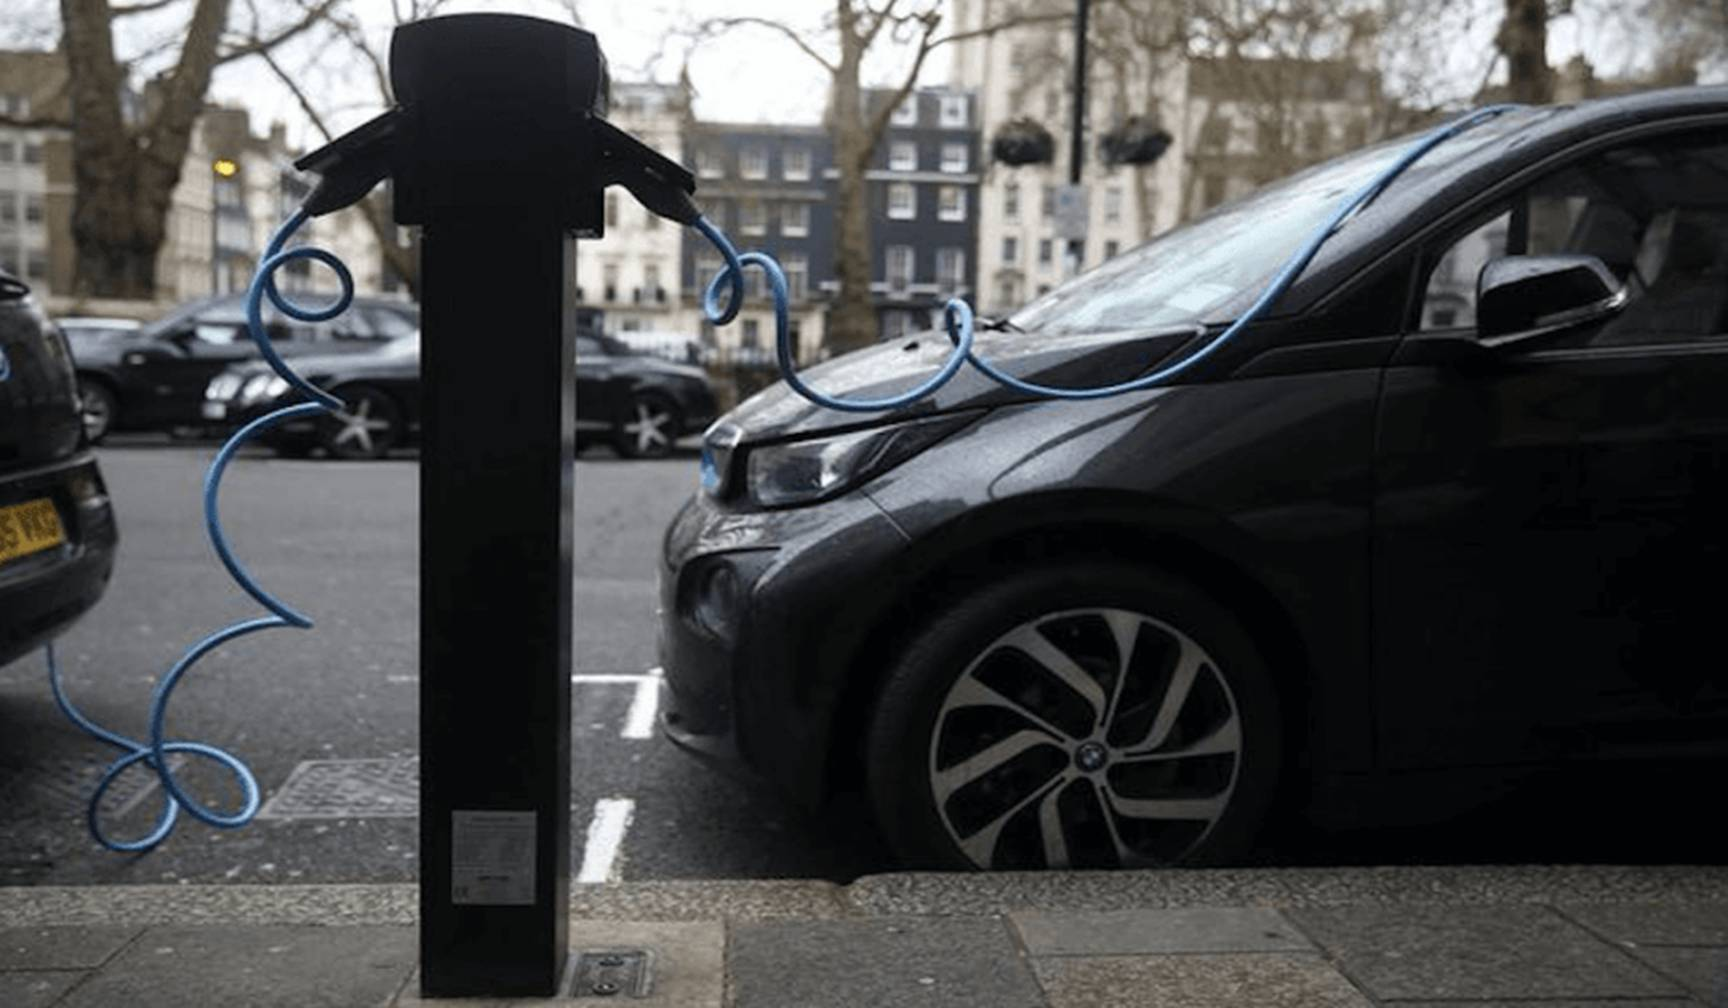 UK-provides-more-than-lakhs-of-dollor-for-electric-vehicle-battery-